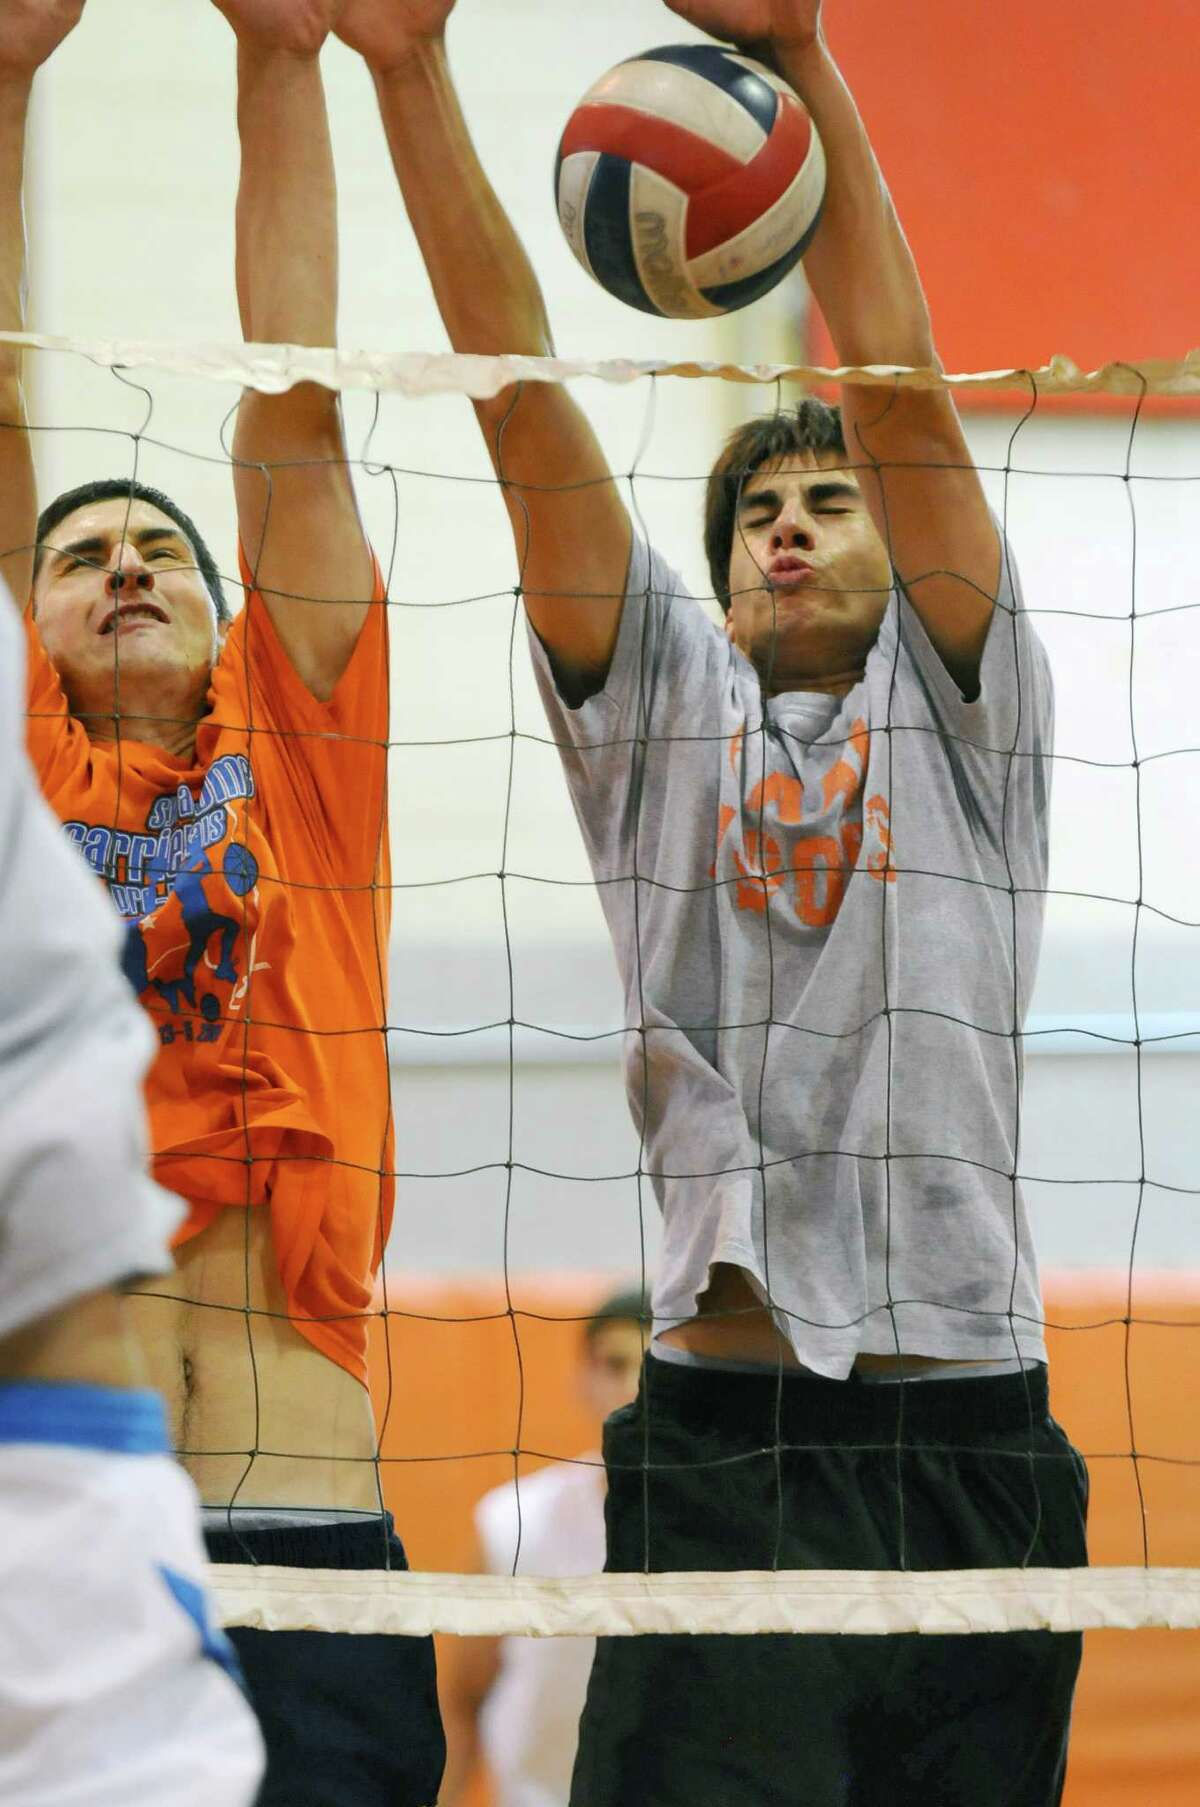 Bethlehem High Central School boys volleyball players Nate Kane, left, and Myles Bergere,right, block a shot during practice on Tuesday afternoon Sept. 4, 2012 in Delmar, NY. (Philip Kamrass / Times Union)